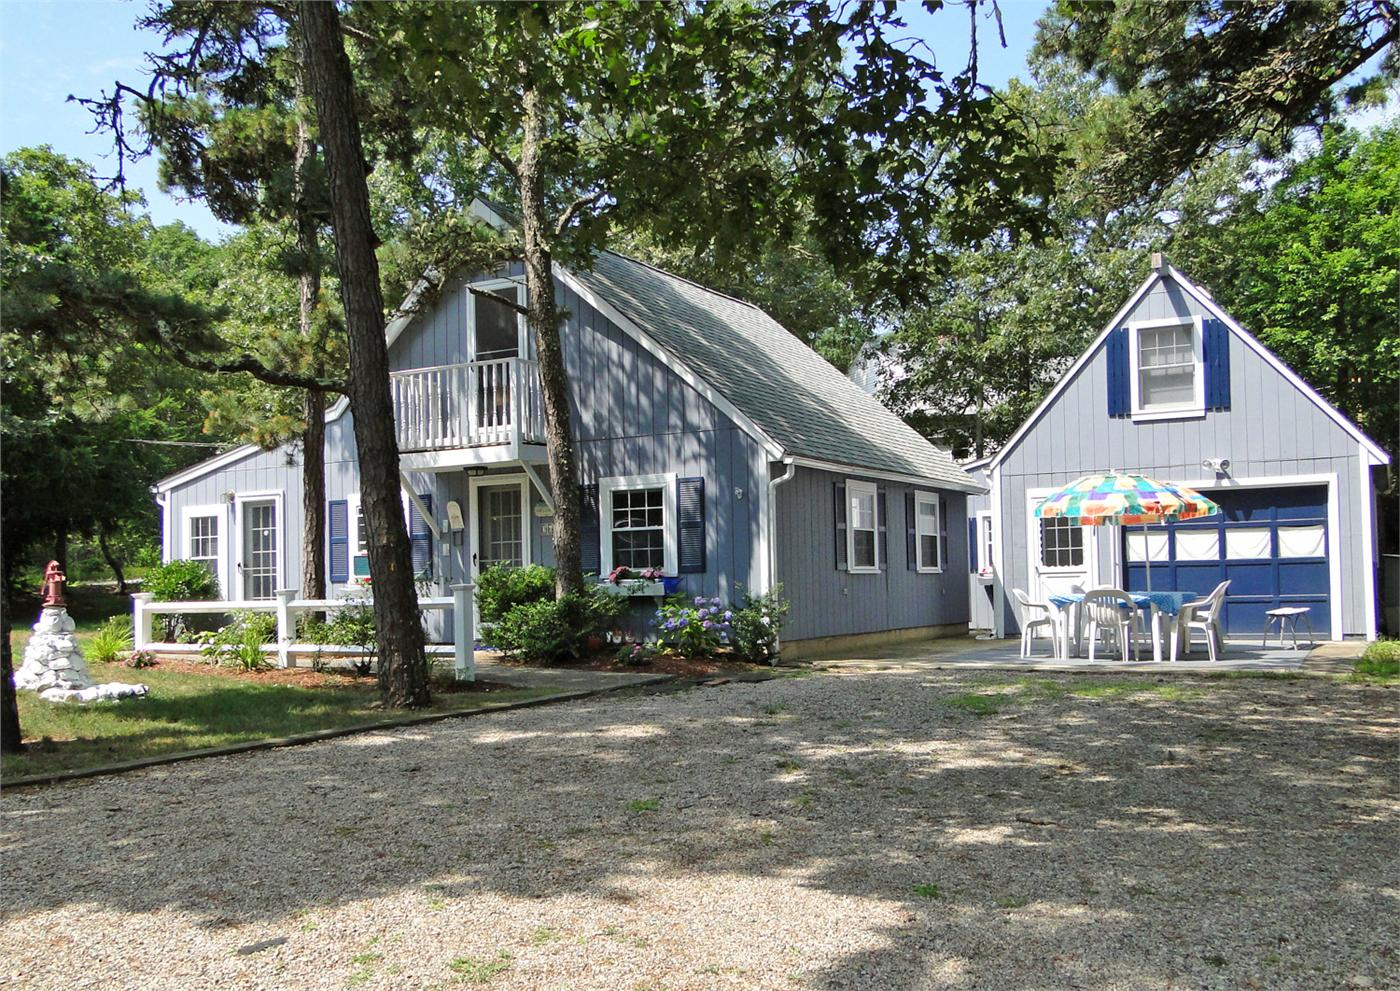 Harwich vacation rental home in cape cod ma 02661 id 19393 for Cabin rentals in cape cod ma